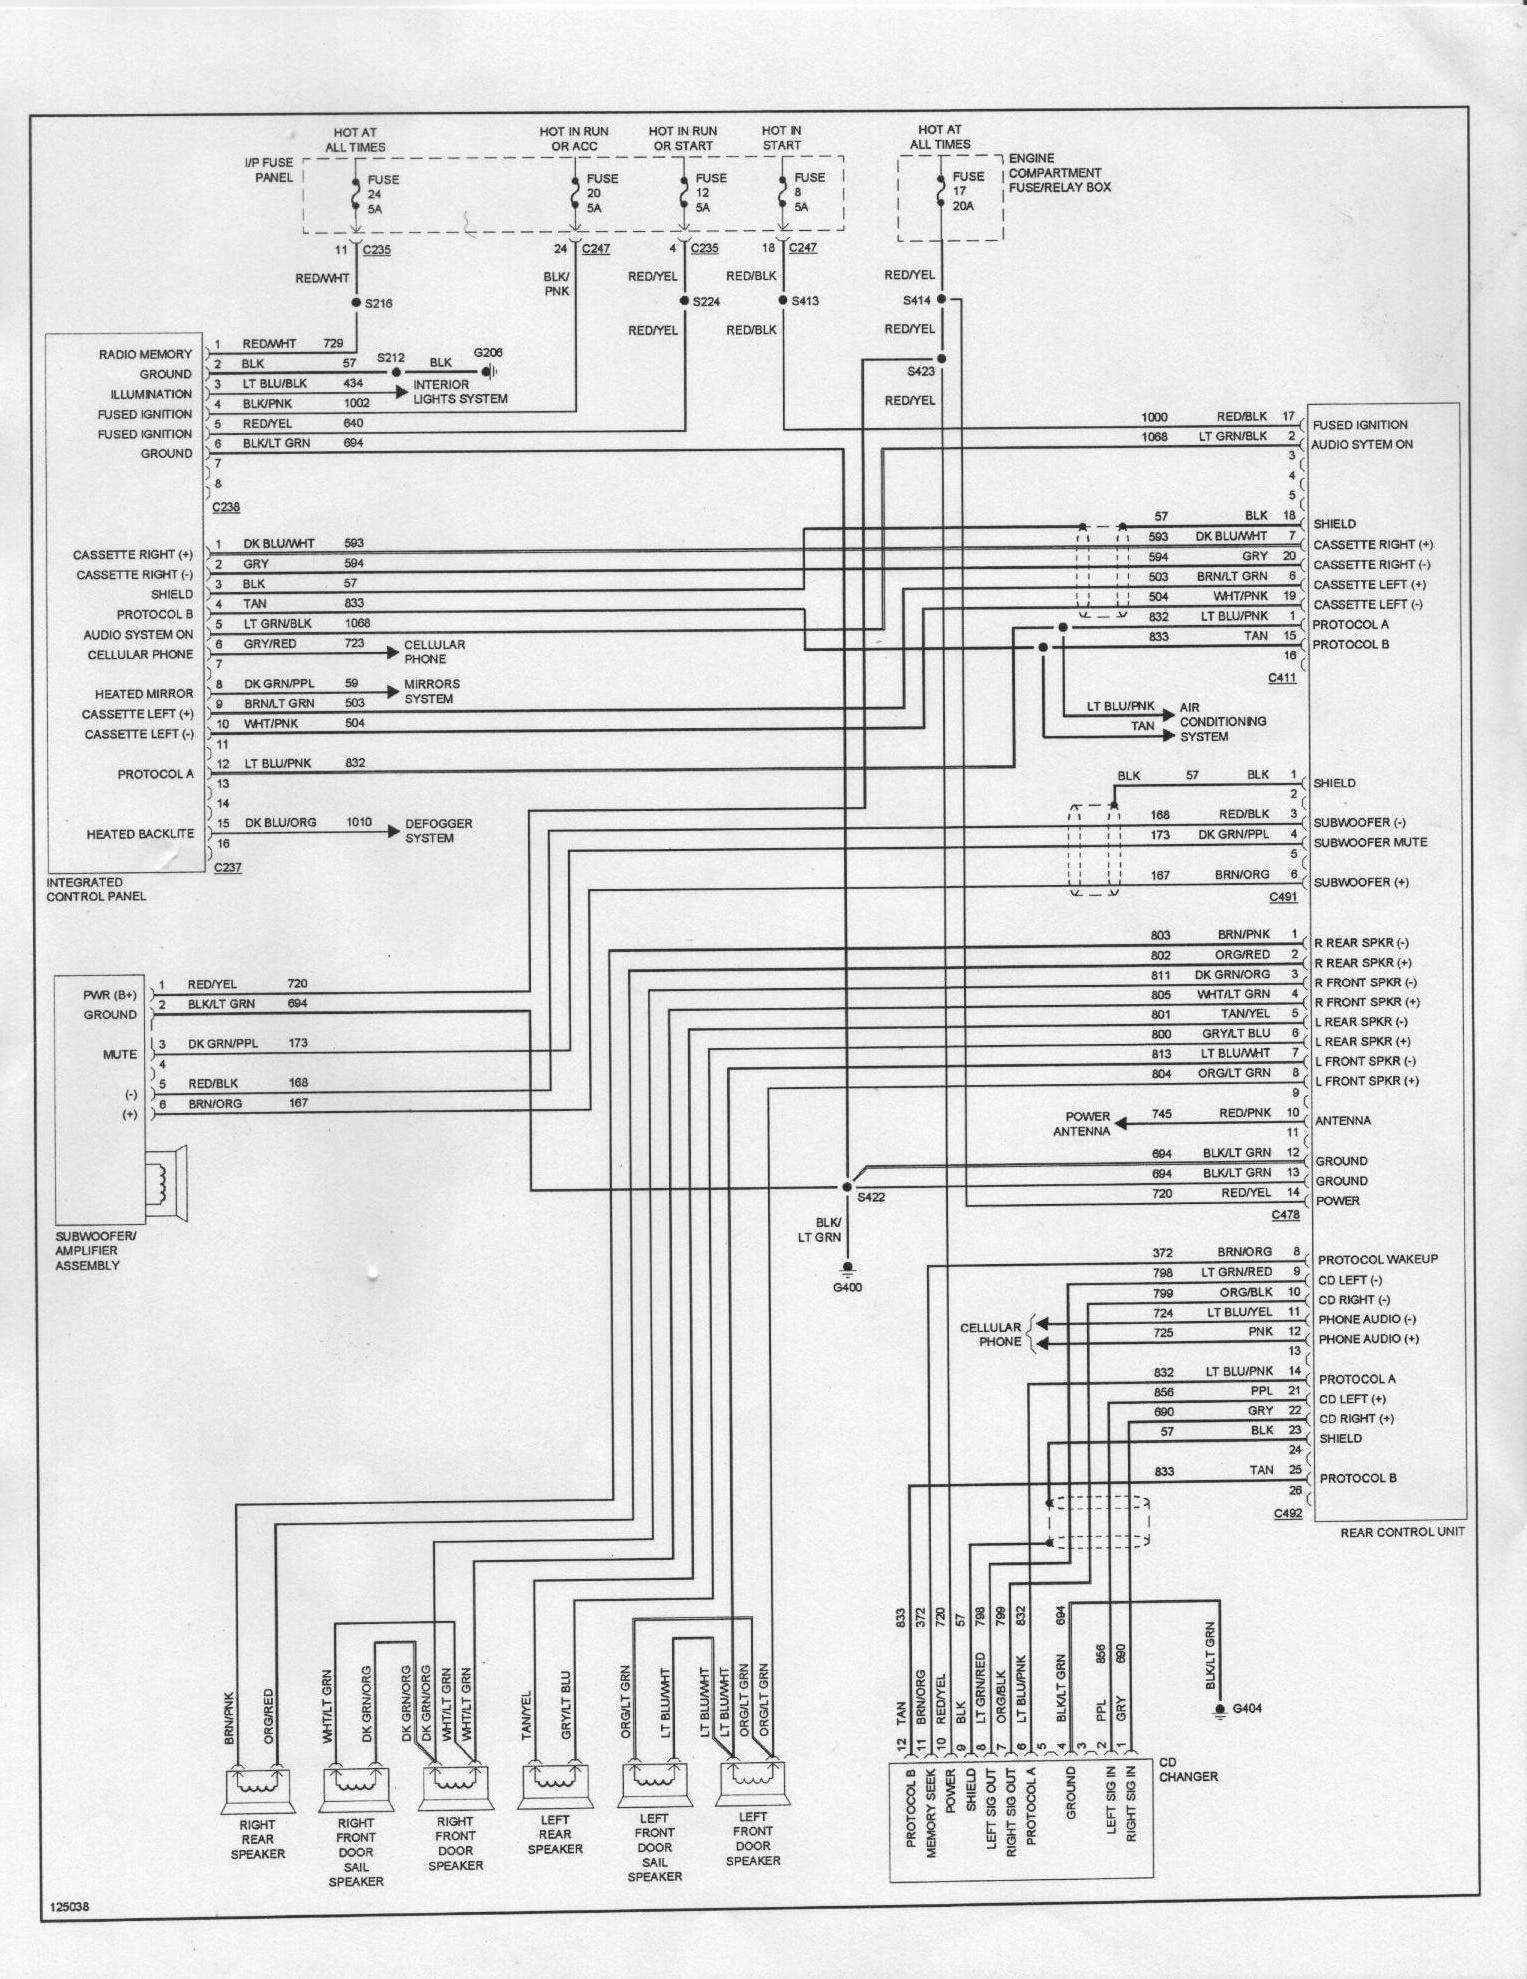 2004 ford excursion wiring diagram 2000 ford excursion radio wiring diagram 2005 ford taurus stereo wiring diagram 2005 ford taurus stereo